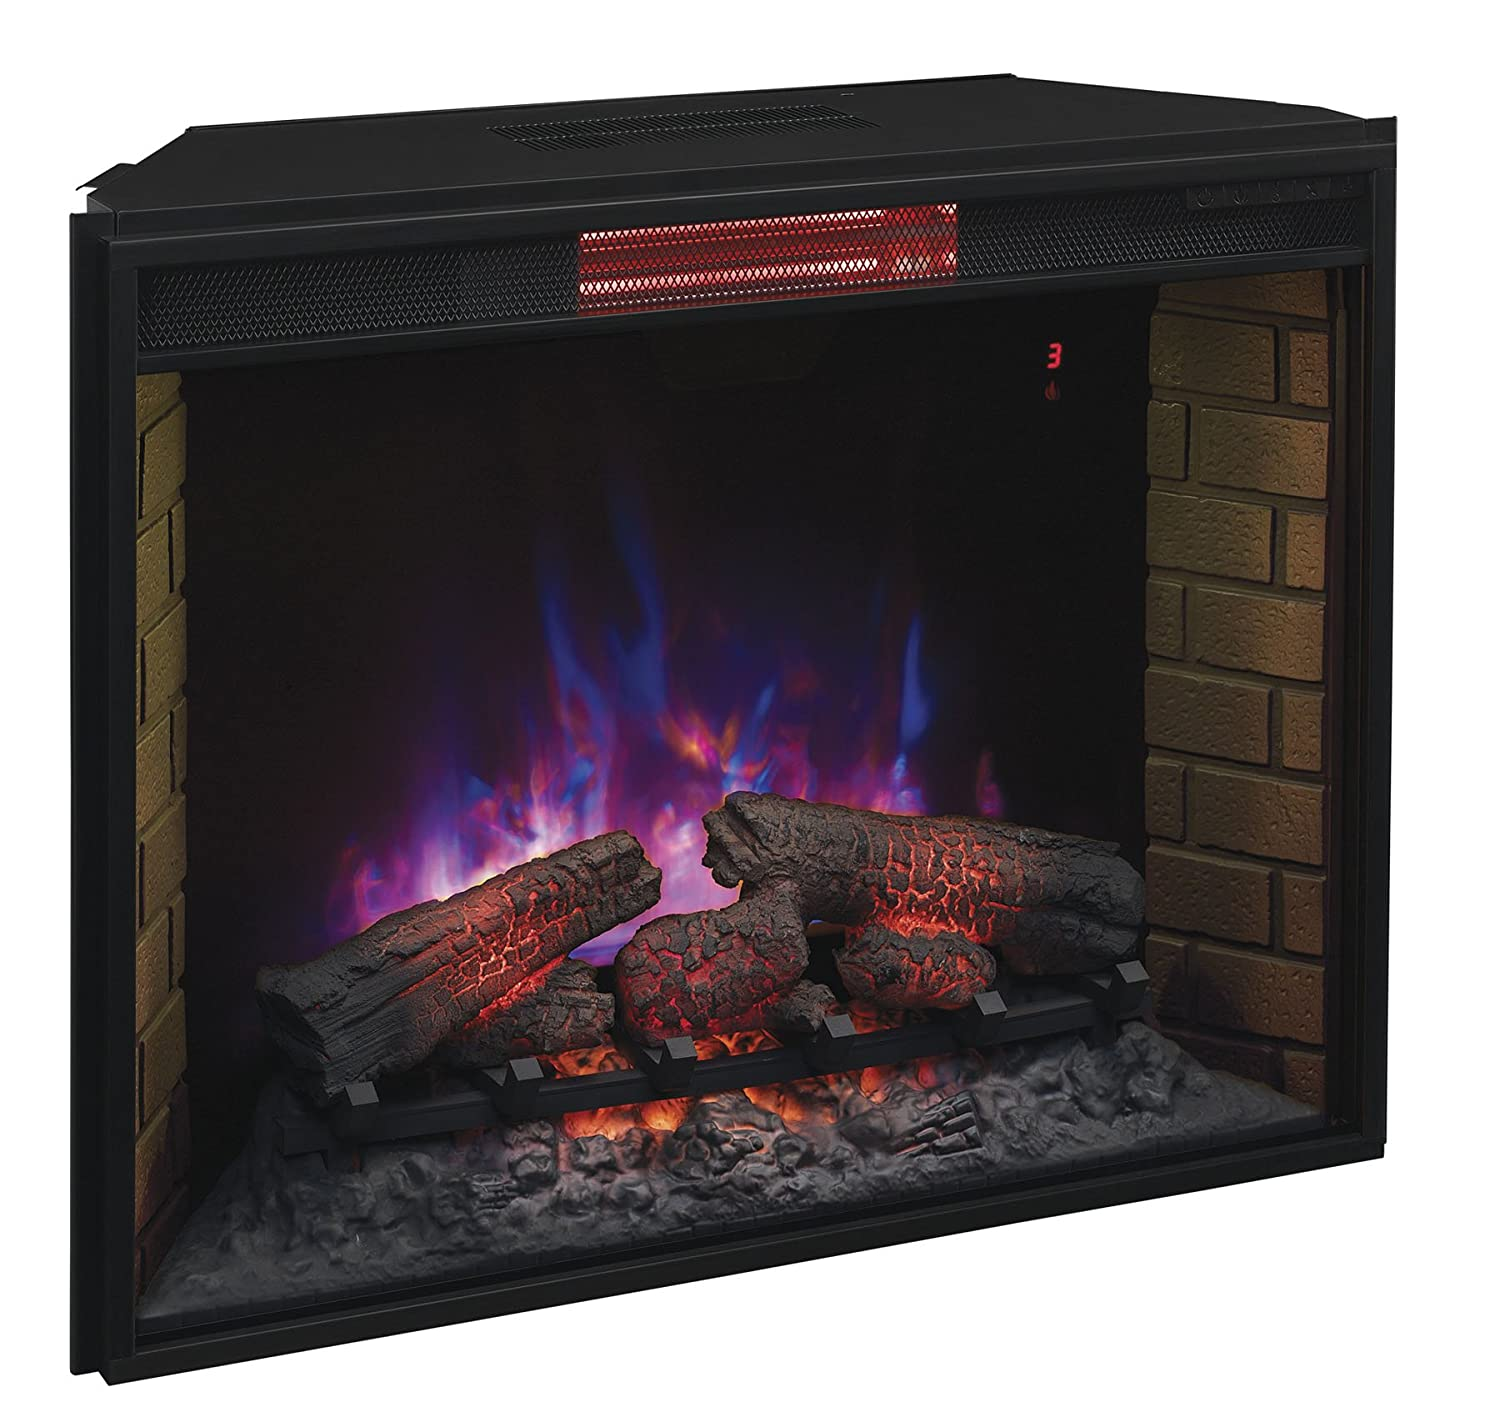 "Amazon.com: ClassicFlame 33II310GRA 33"" Infrared Quartz Fireplace Insert with Safer Plug: Home & Kitchen"